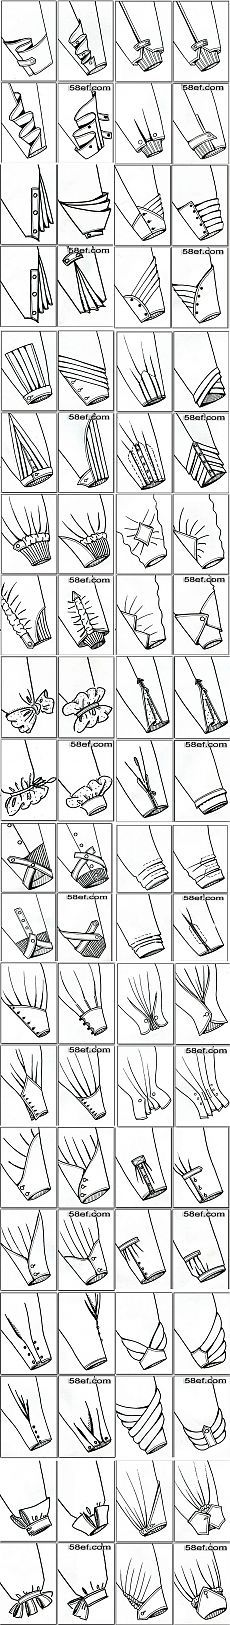 Ways to End Sleeves _ Extensive Diagrams of Ways to End a Sleeve  __________________________ НИЗ РУКАВА